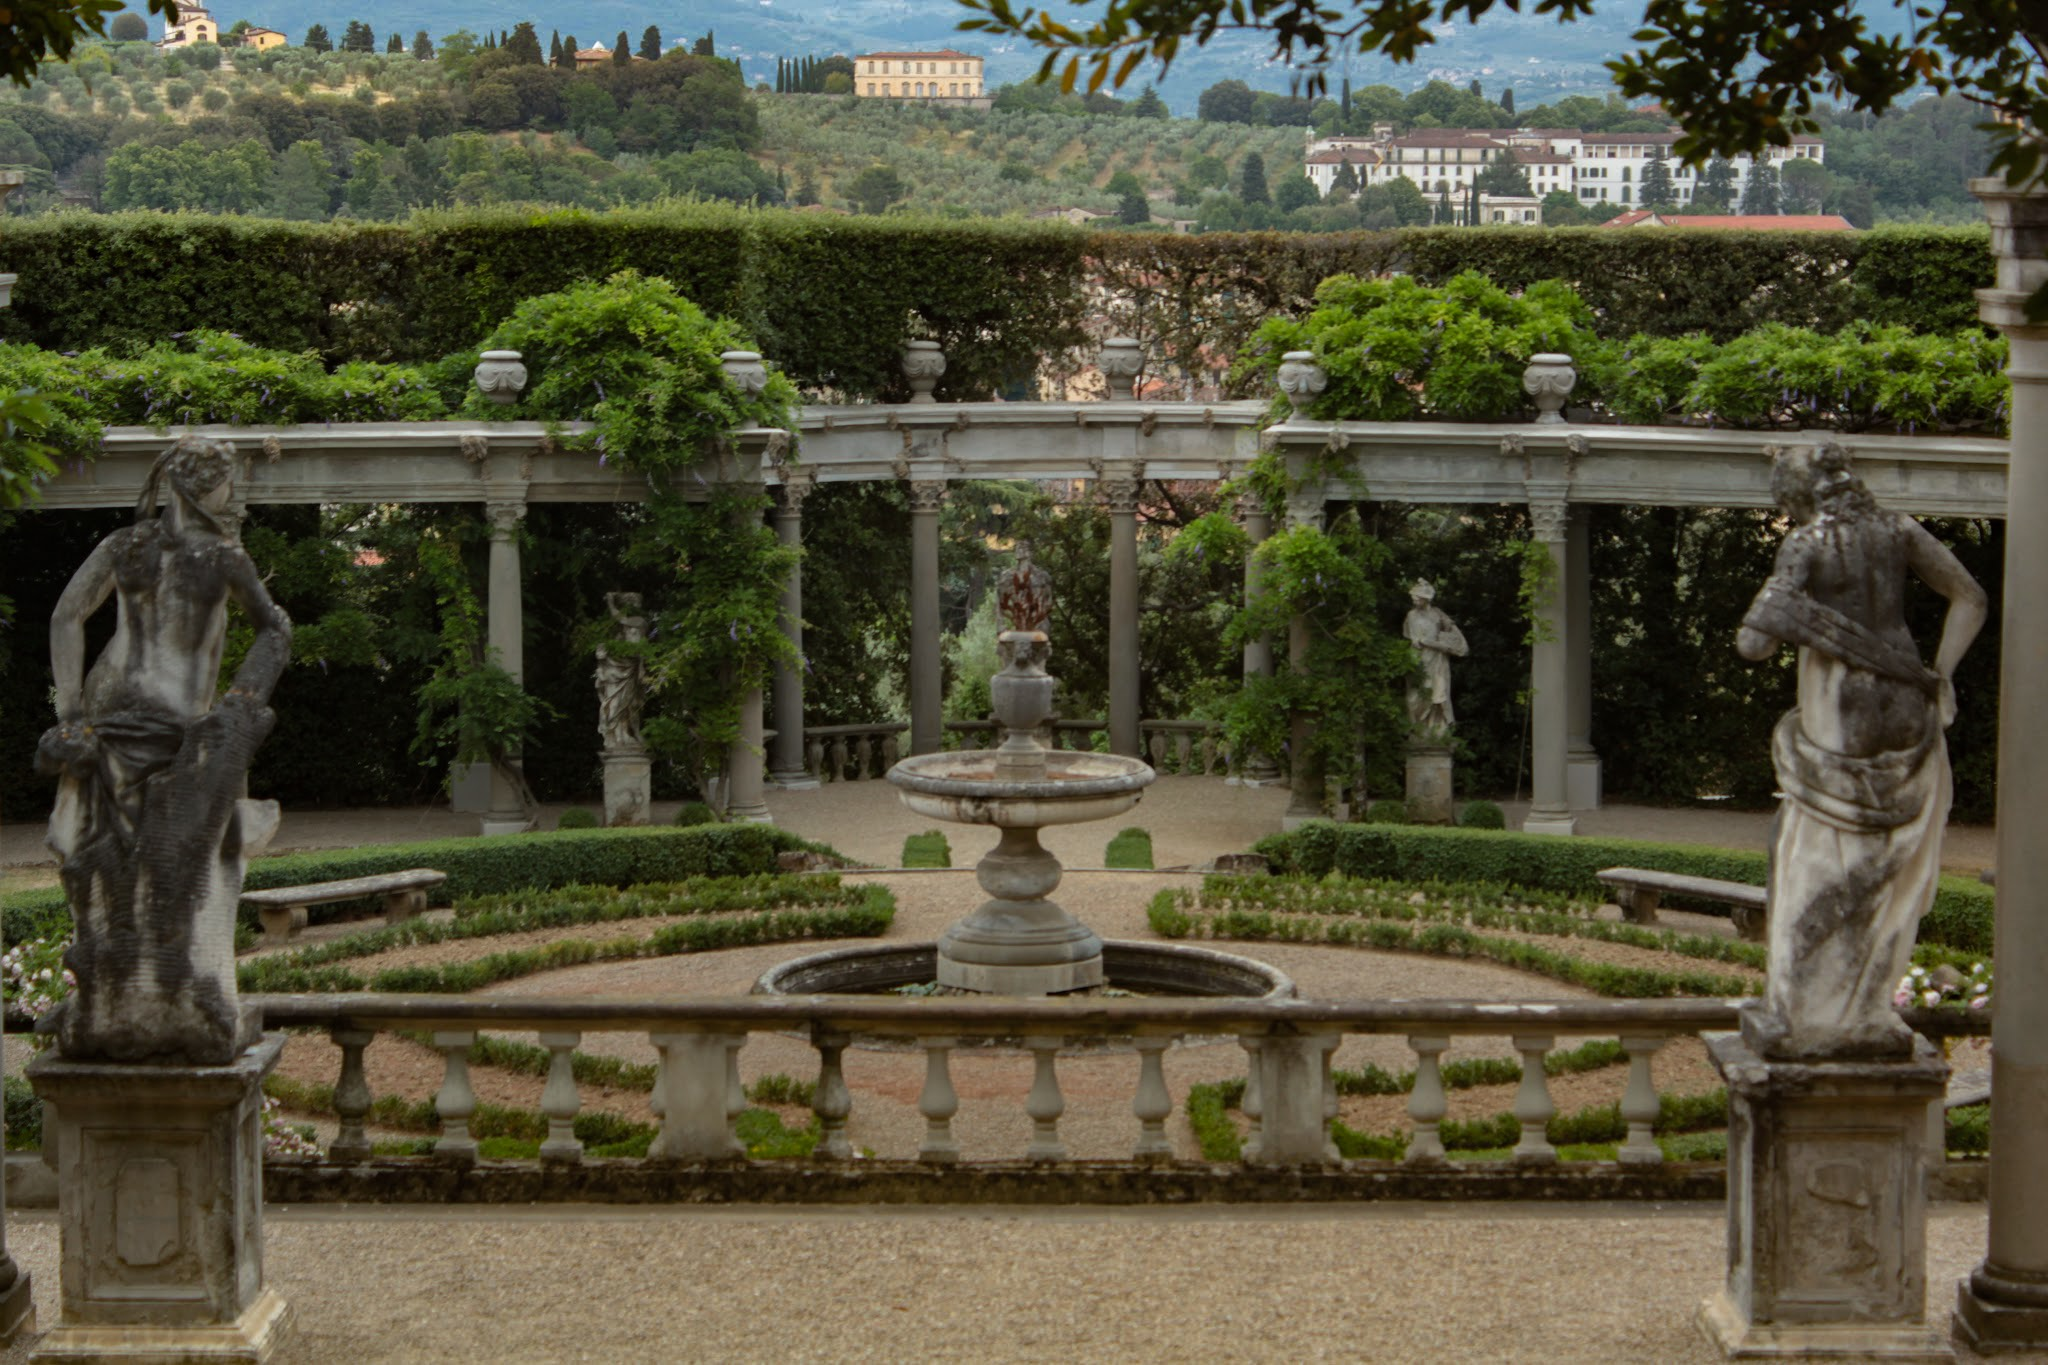 garden with fountain and statues